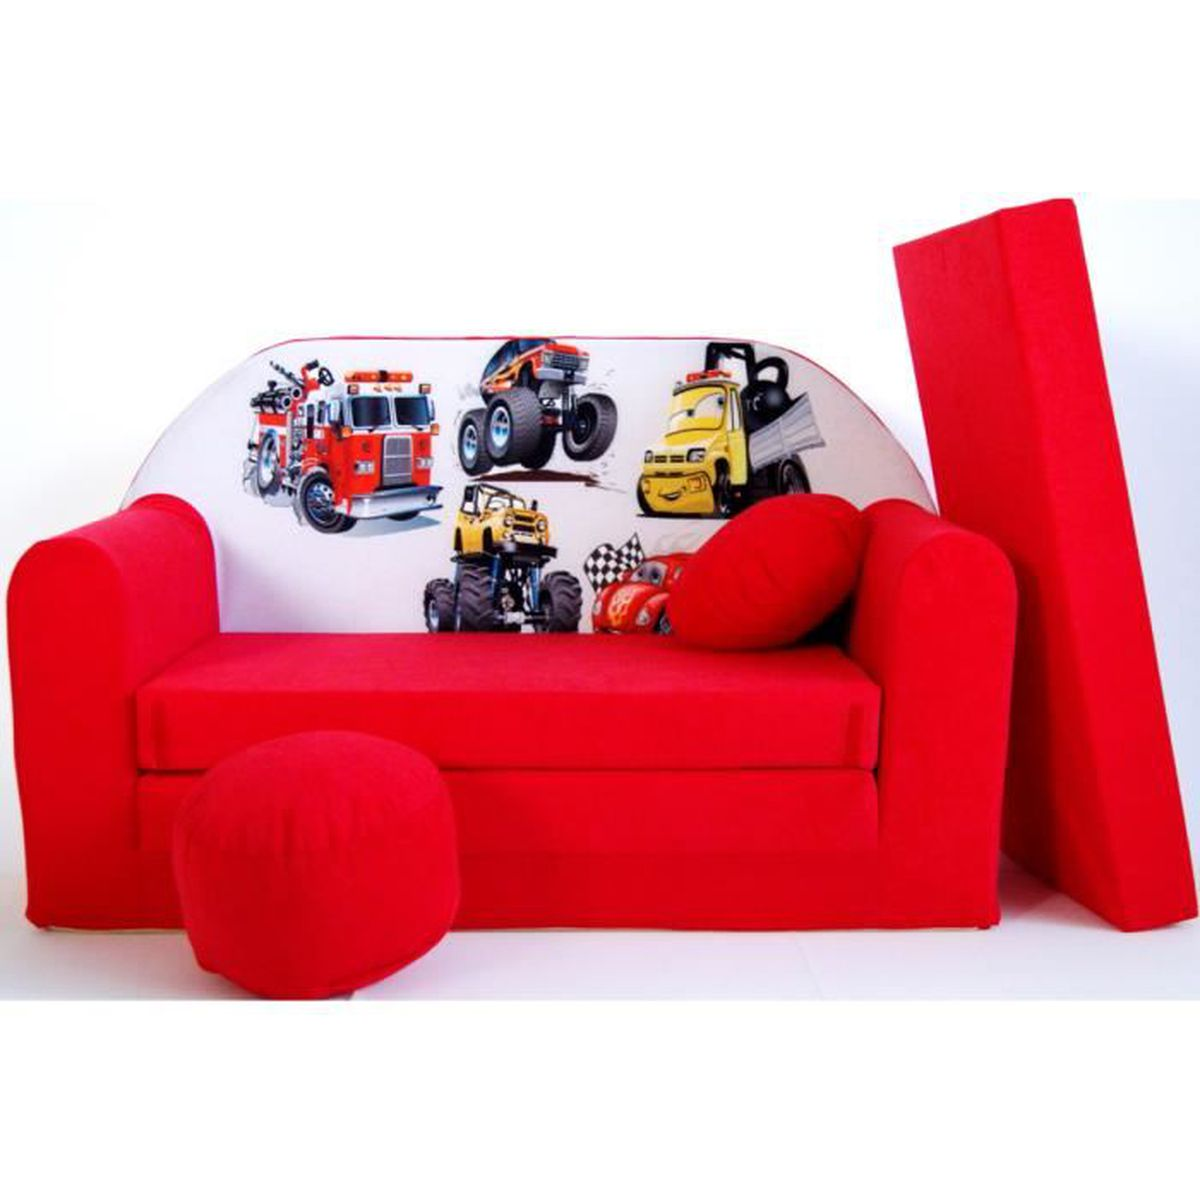 canape sofa enfant 2 places convertible voitures rouge achat vente fauteuil canap b b. Black Bedroom Furniture Sets. Home Design Ideas